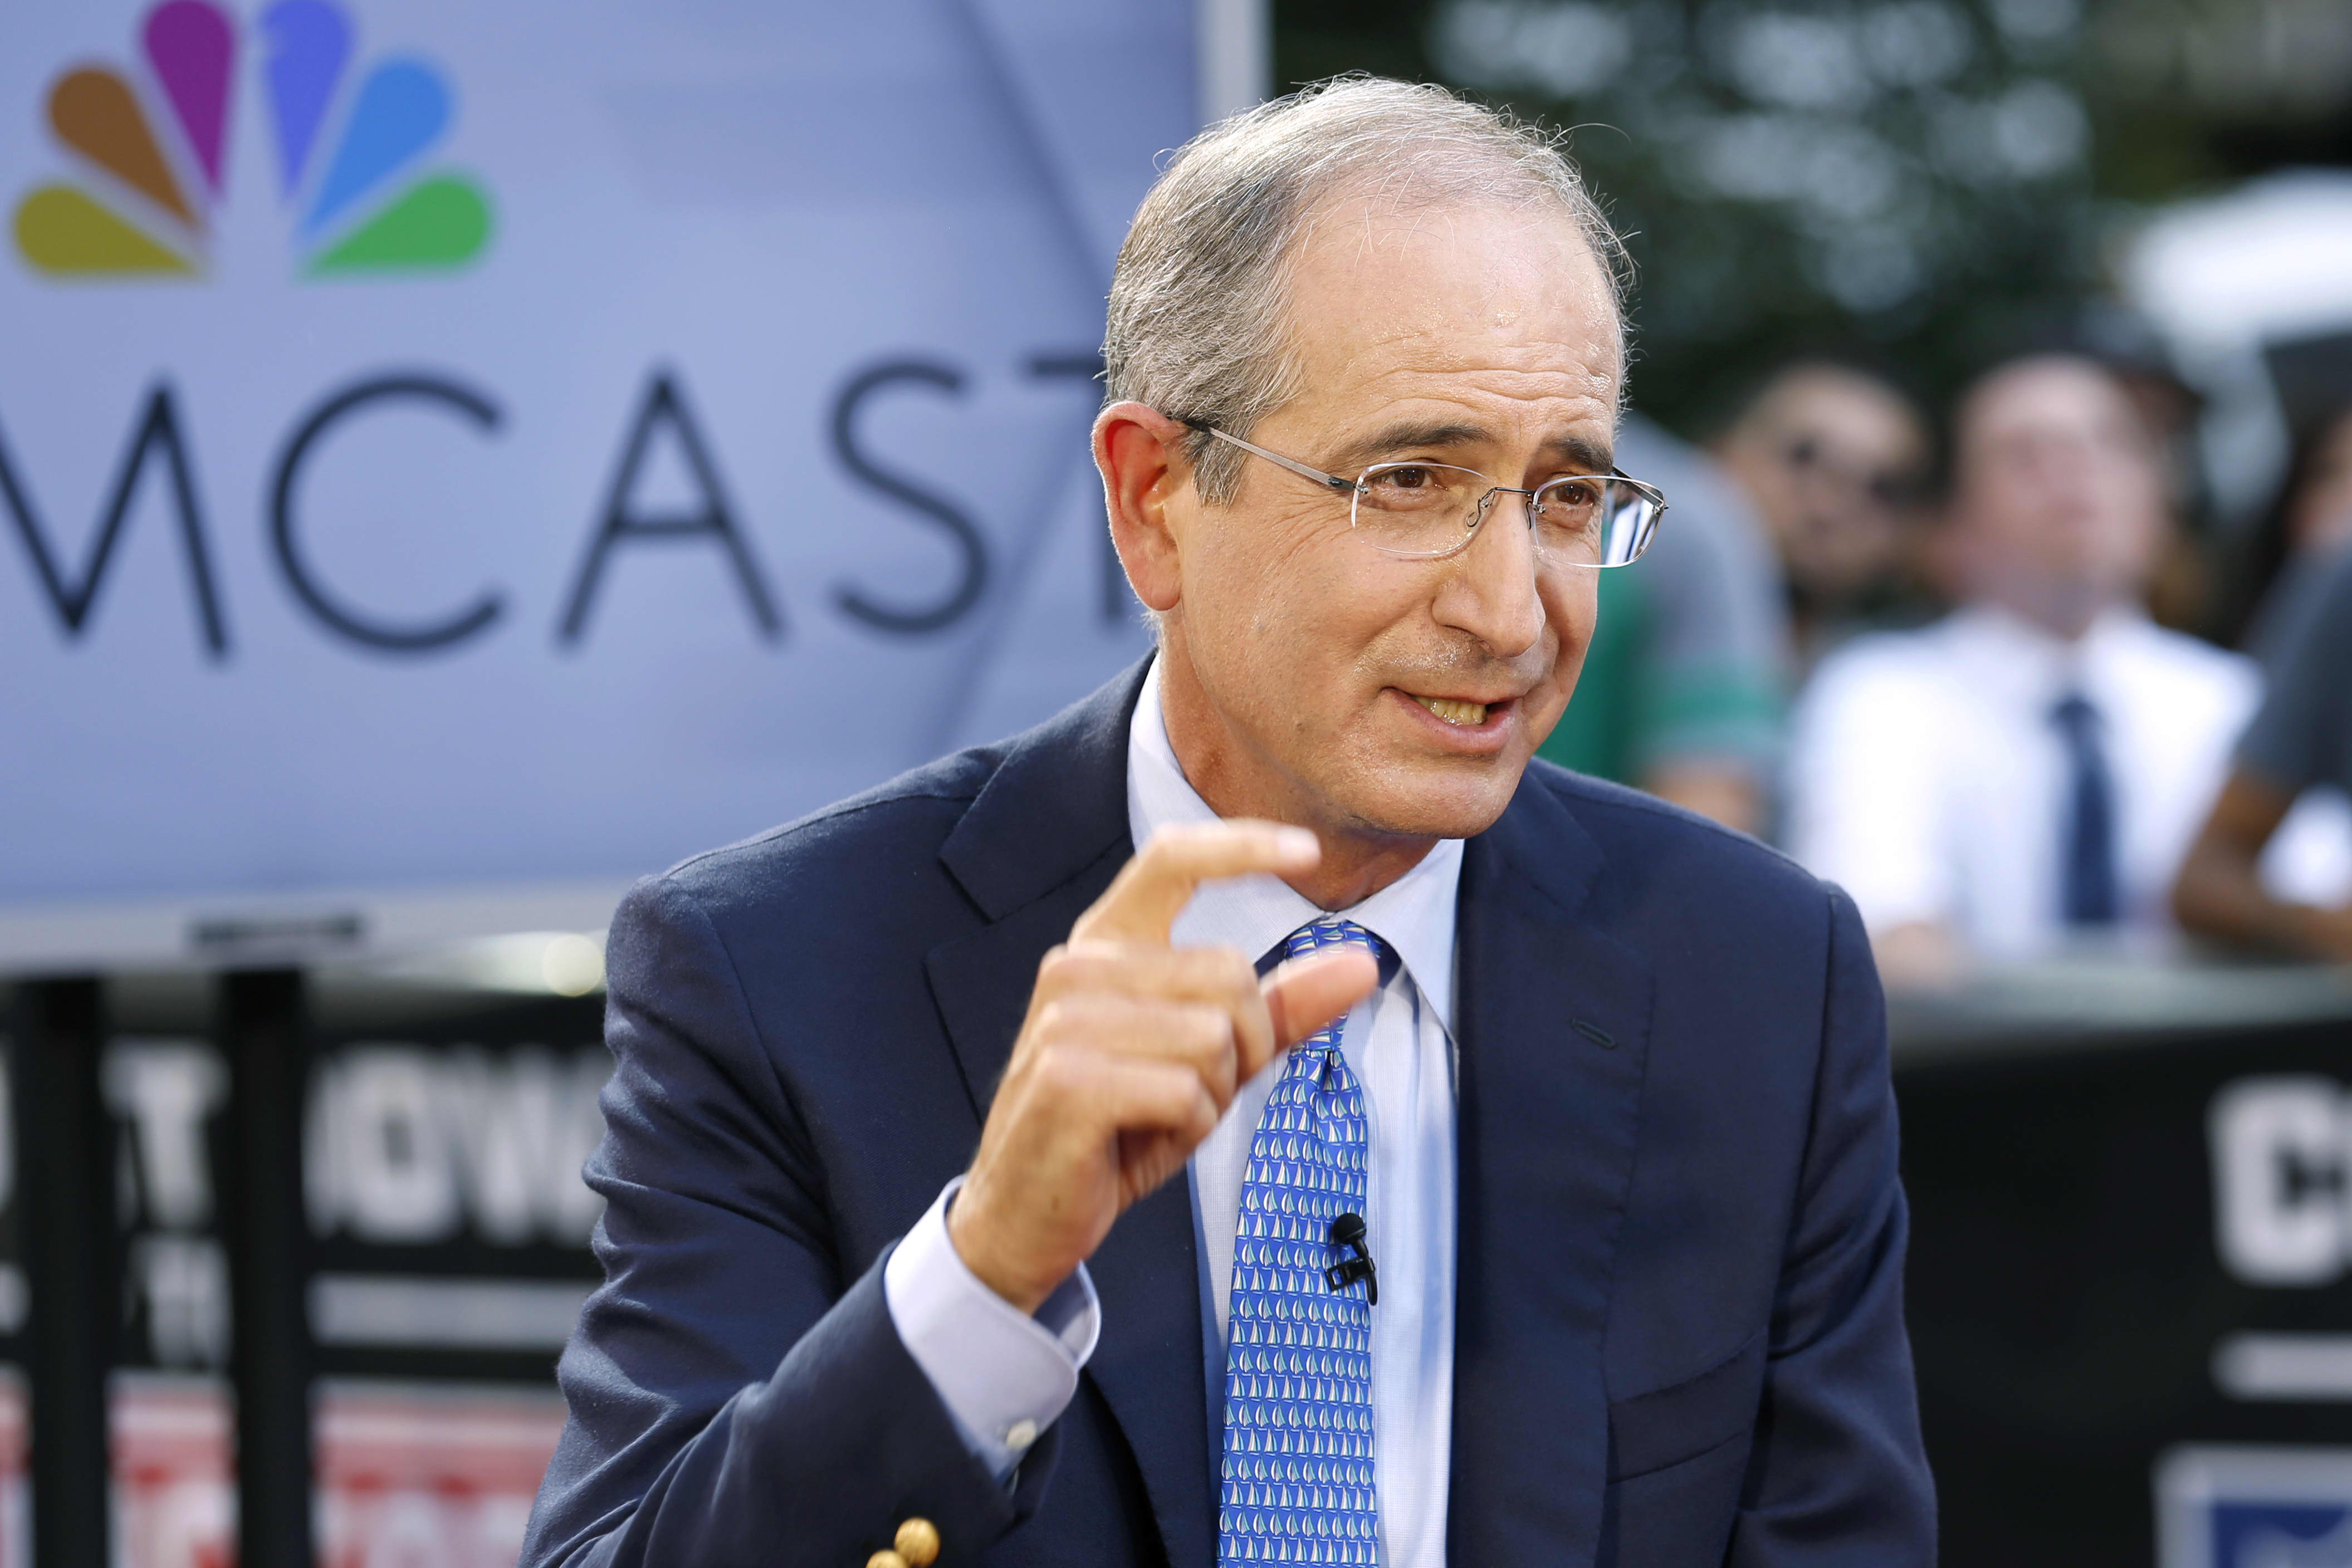 Comcast To Narrow Focus Of Comcast Ventures Leading To Partner Defections